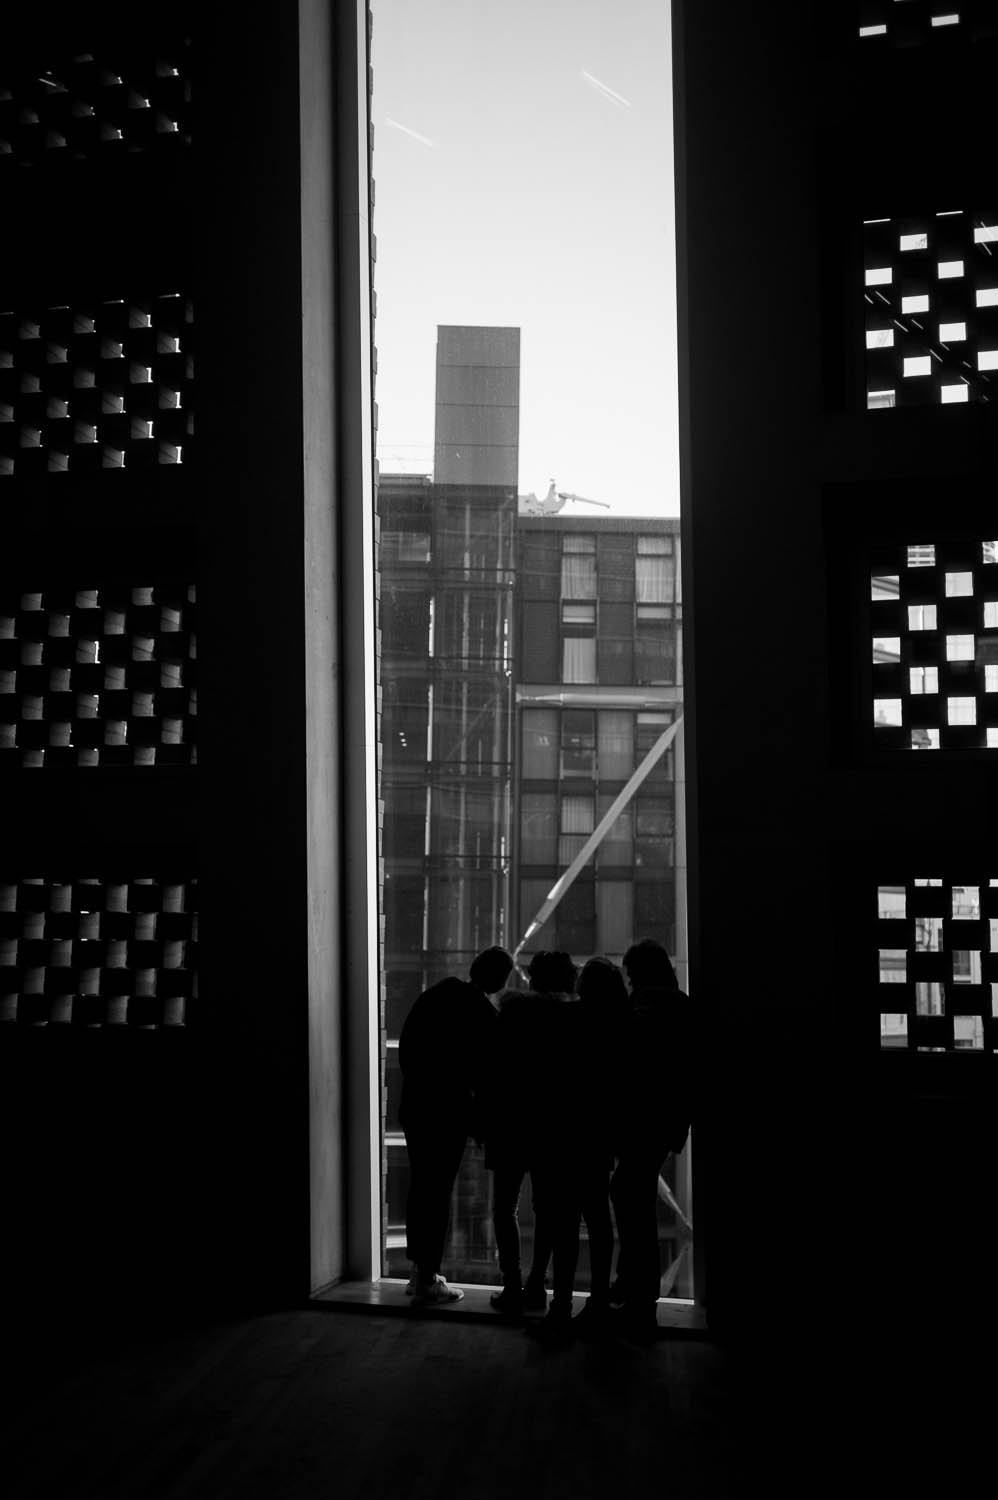 A group of children look through a tall window at the Tate Modern museum.